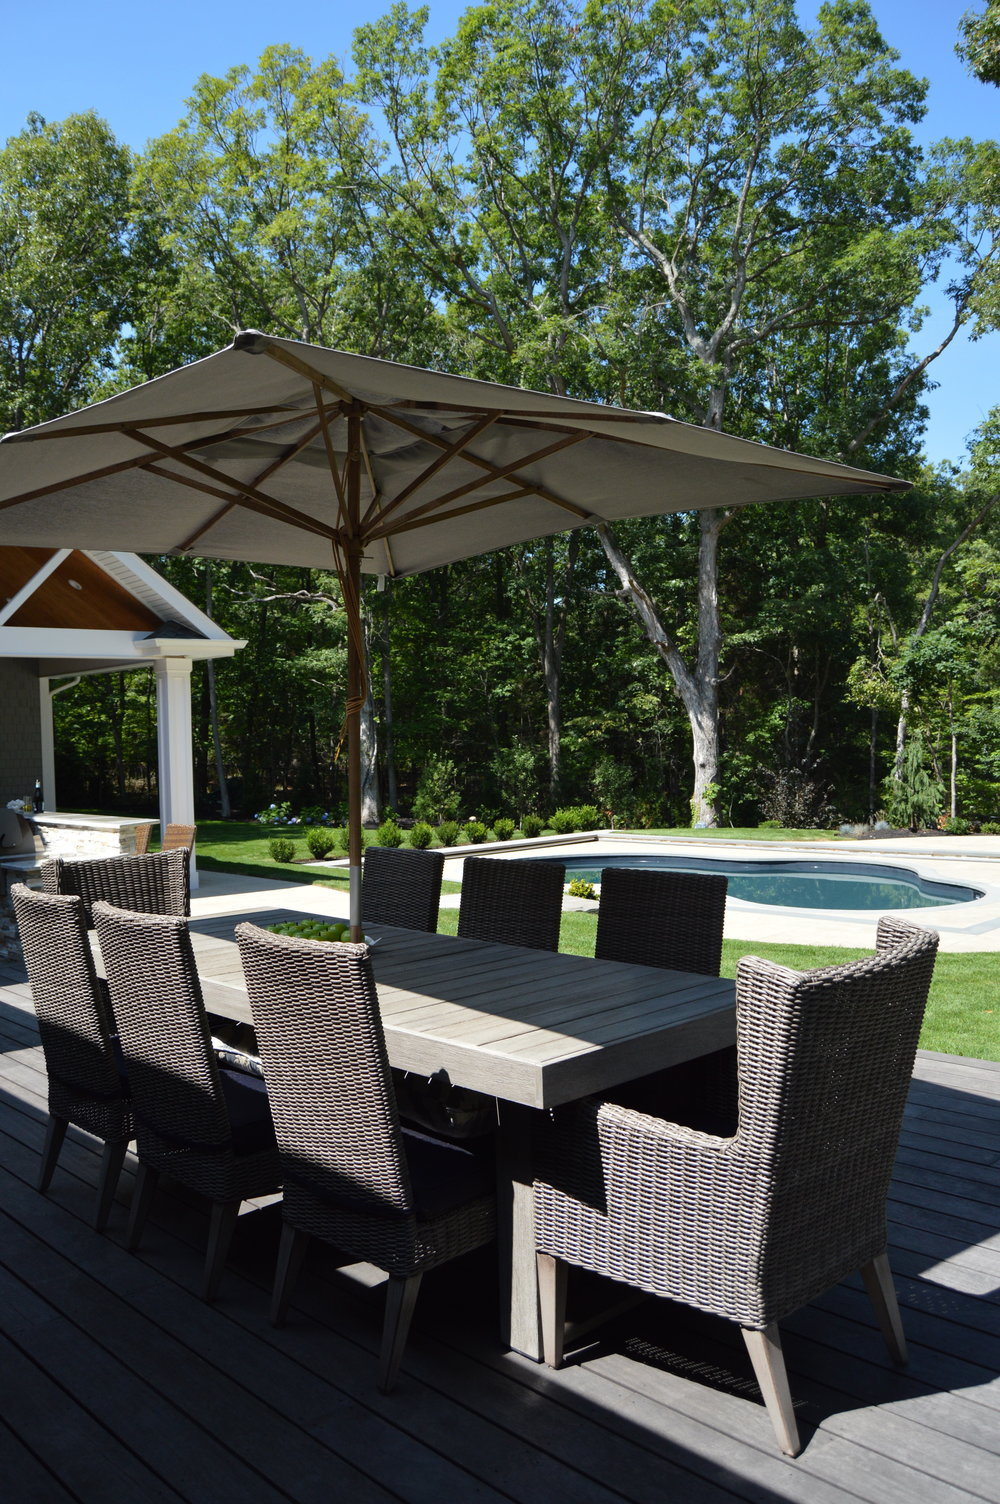 outdoor dining on the patio in Smithtown, NY